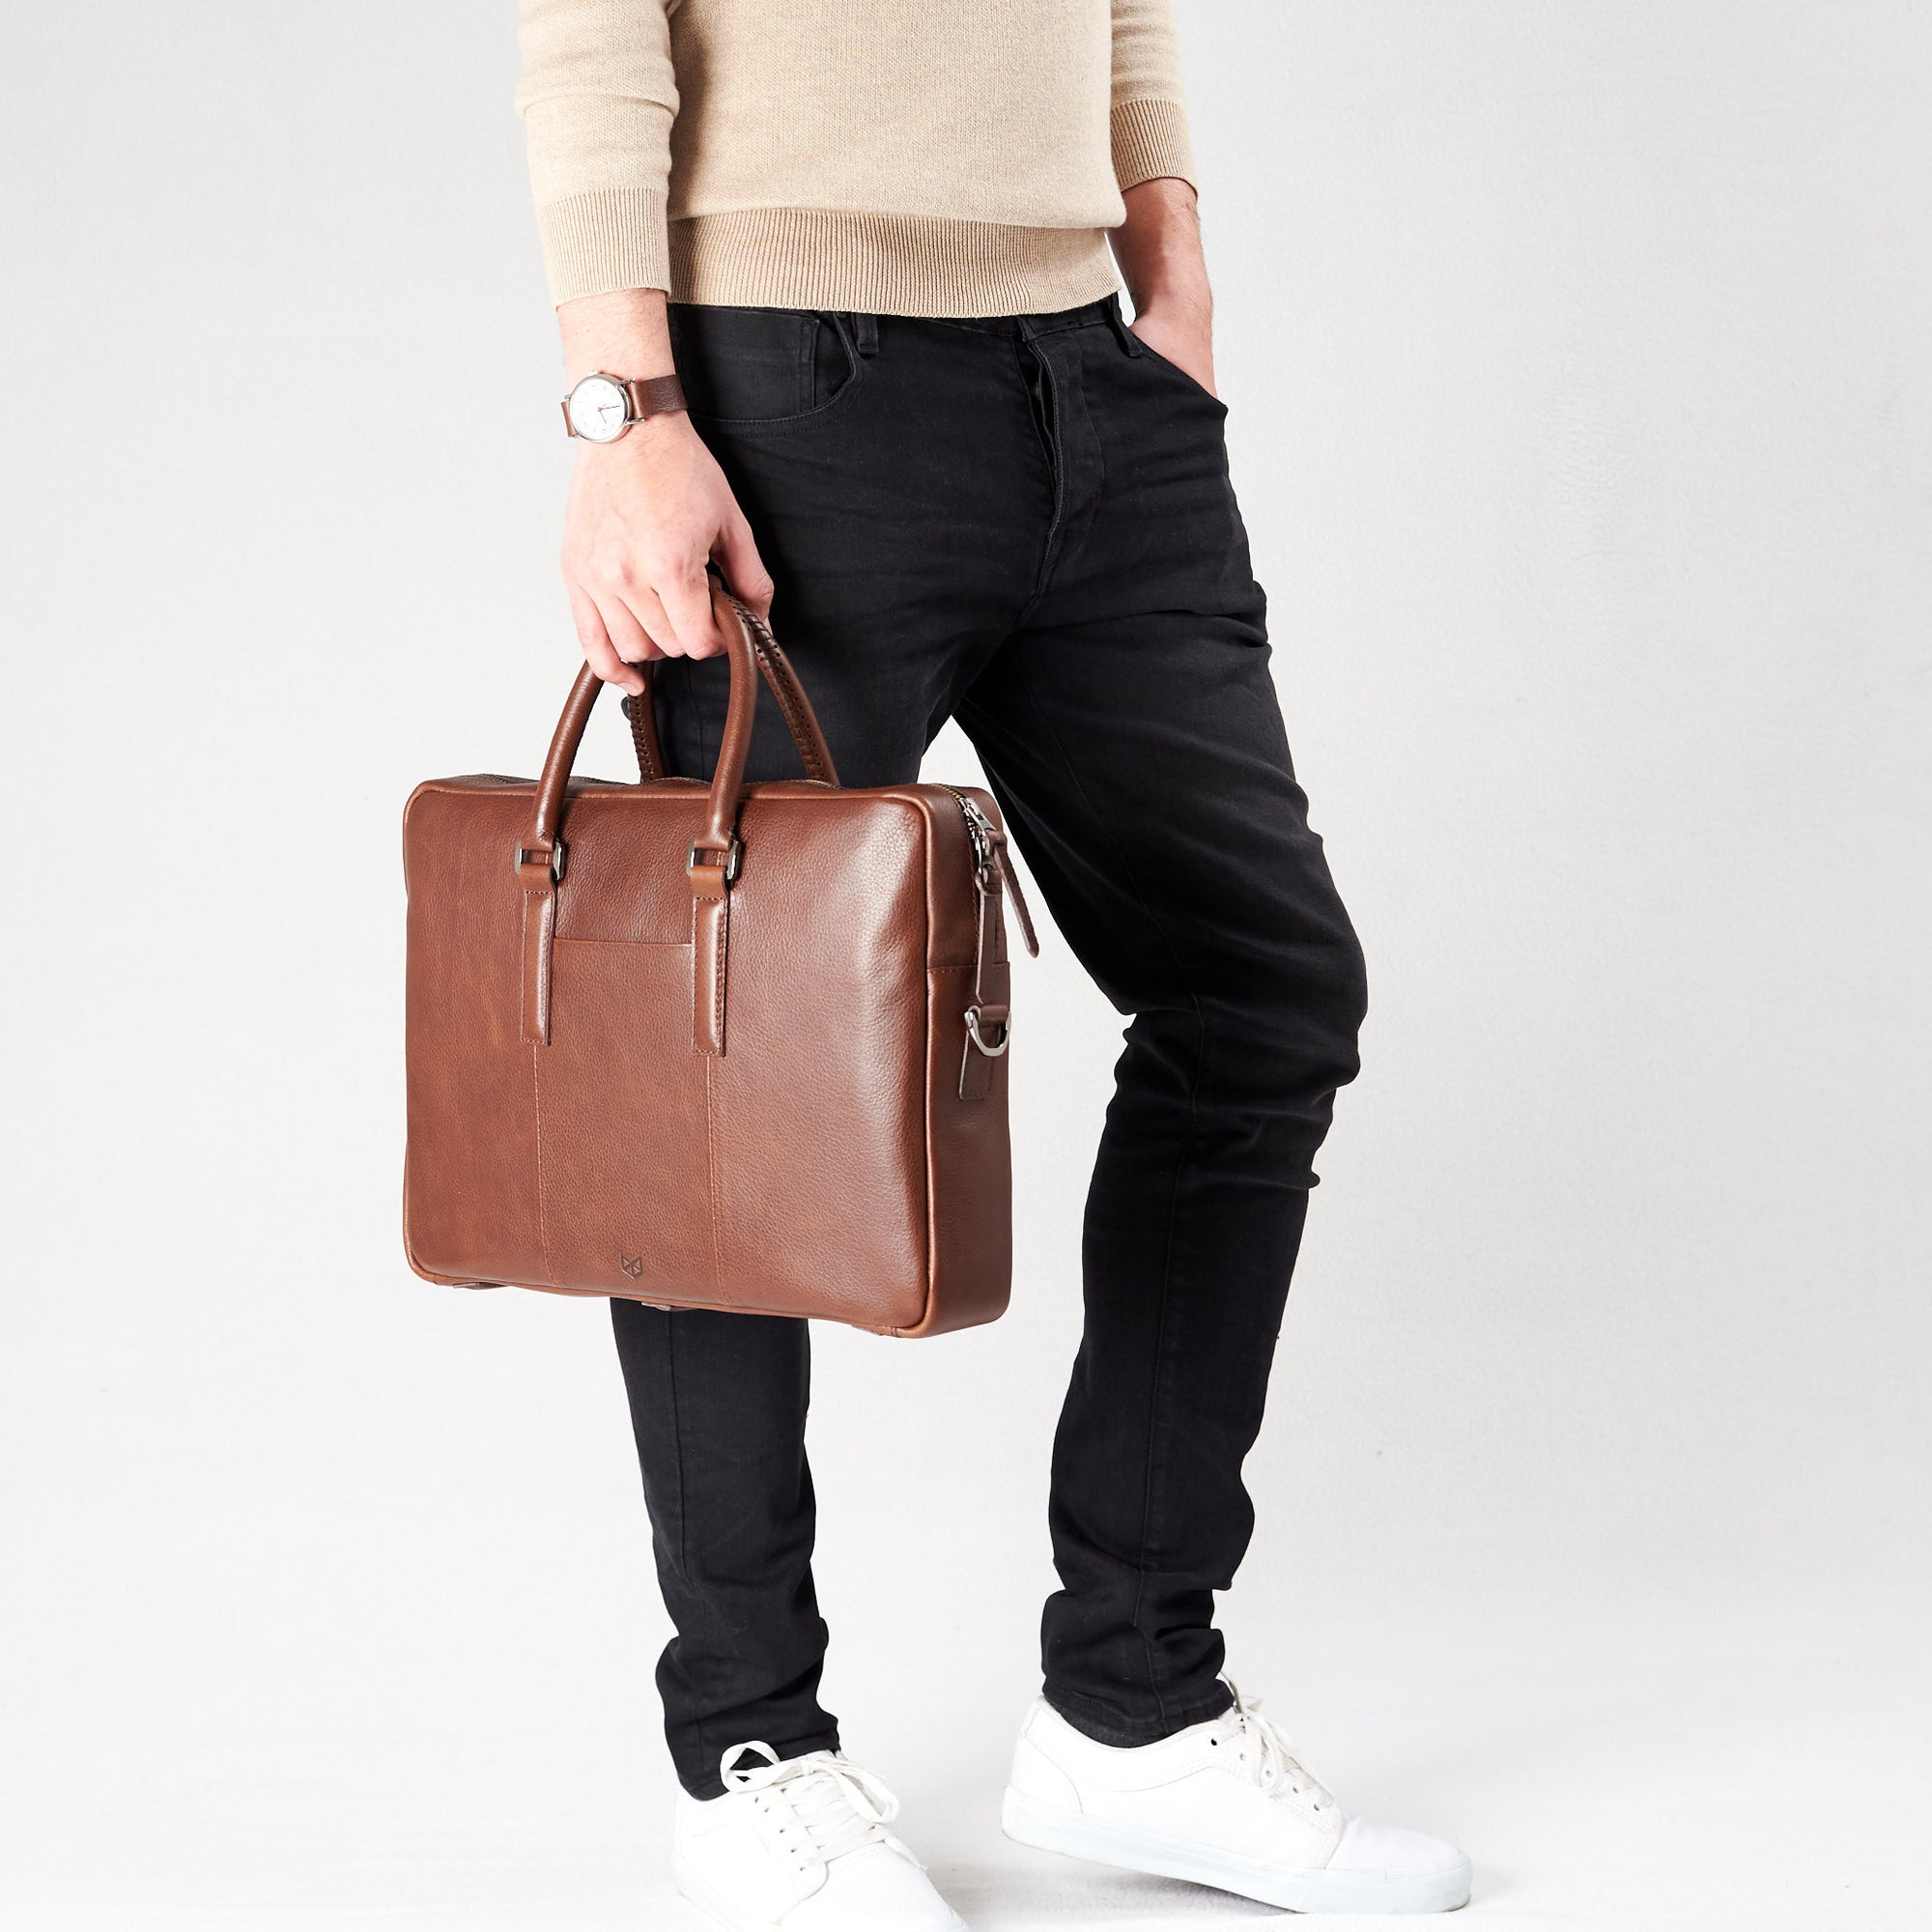 Frontal view attache case .Brown leather briefcase laptop bag for men. Gazeli laptop briefcase by Capra Leather.